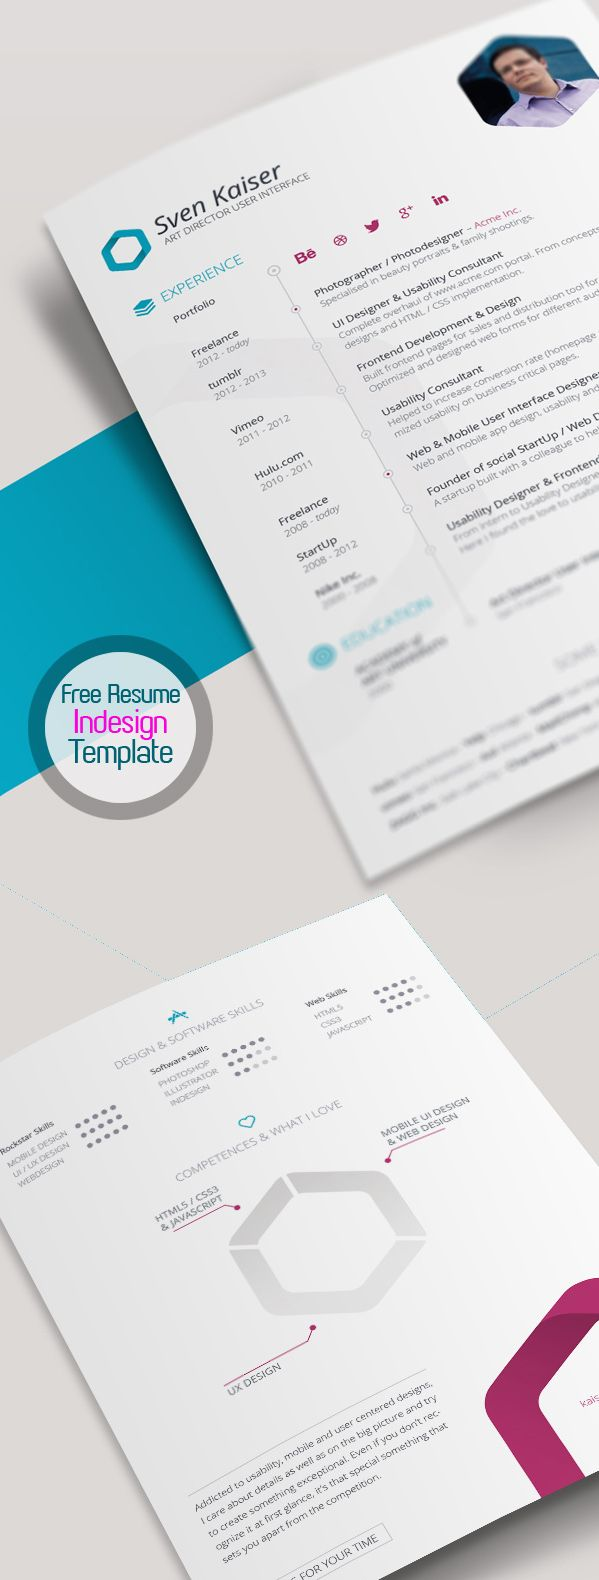 Best D E S I G N  Resume  Planner Images On